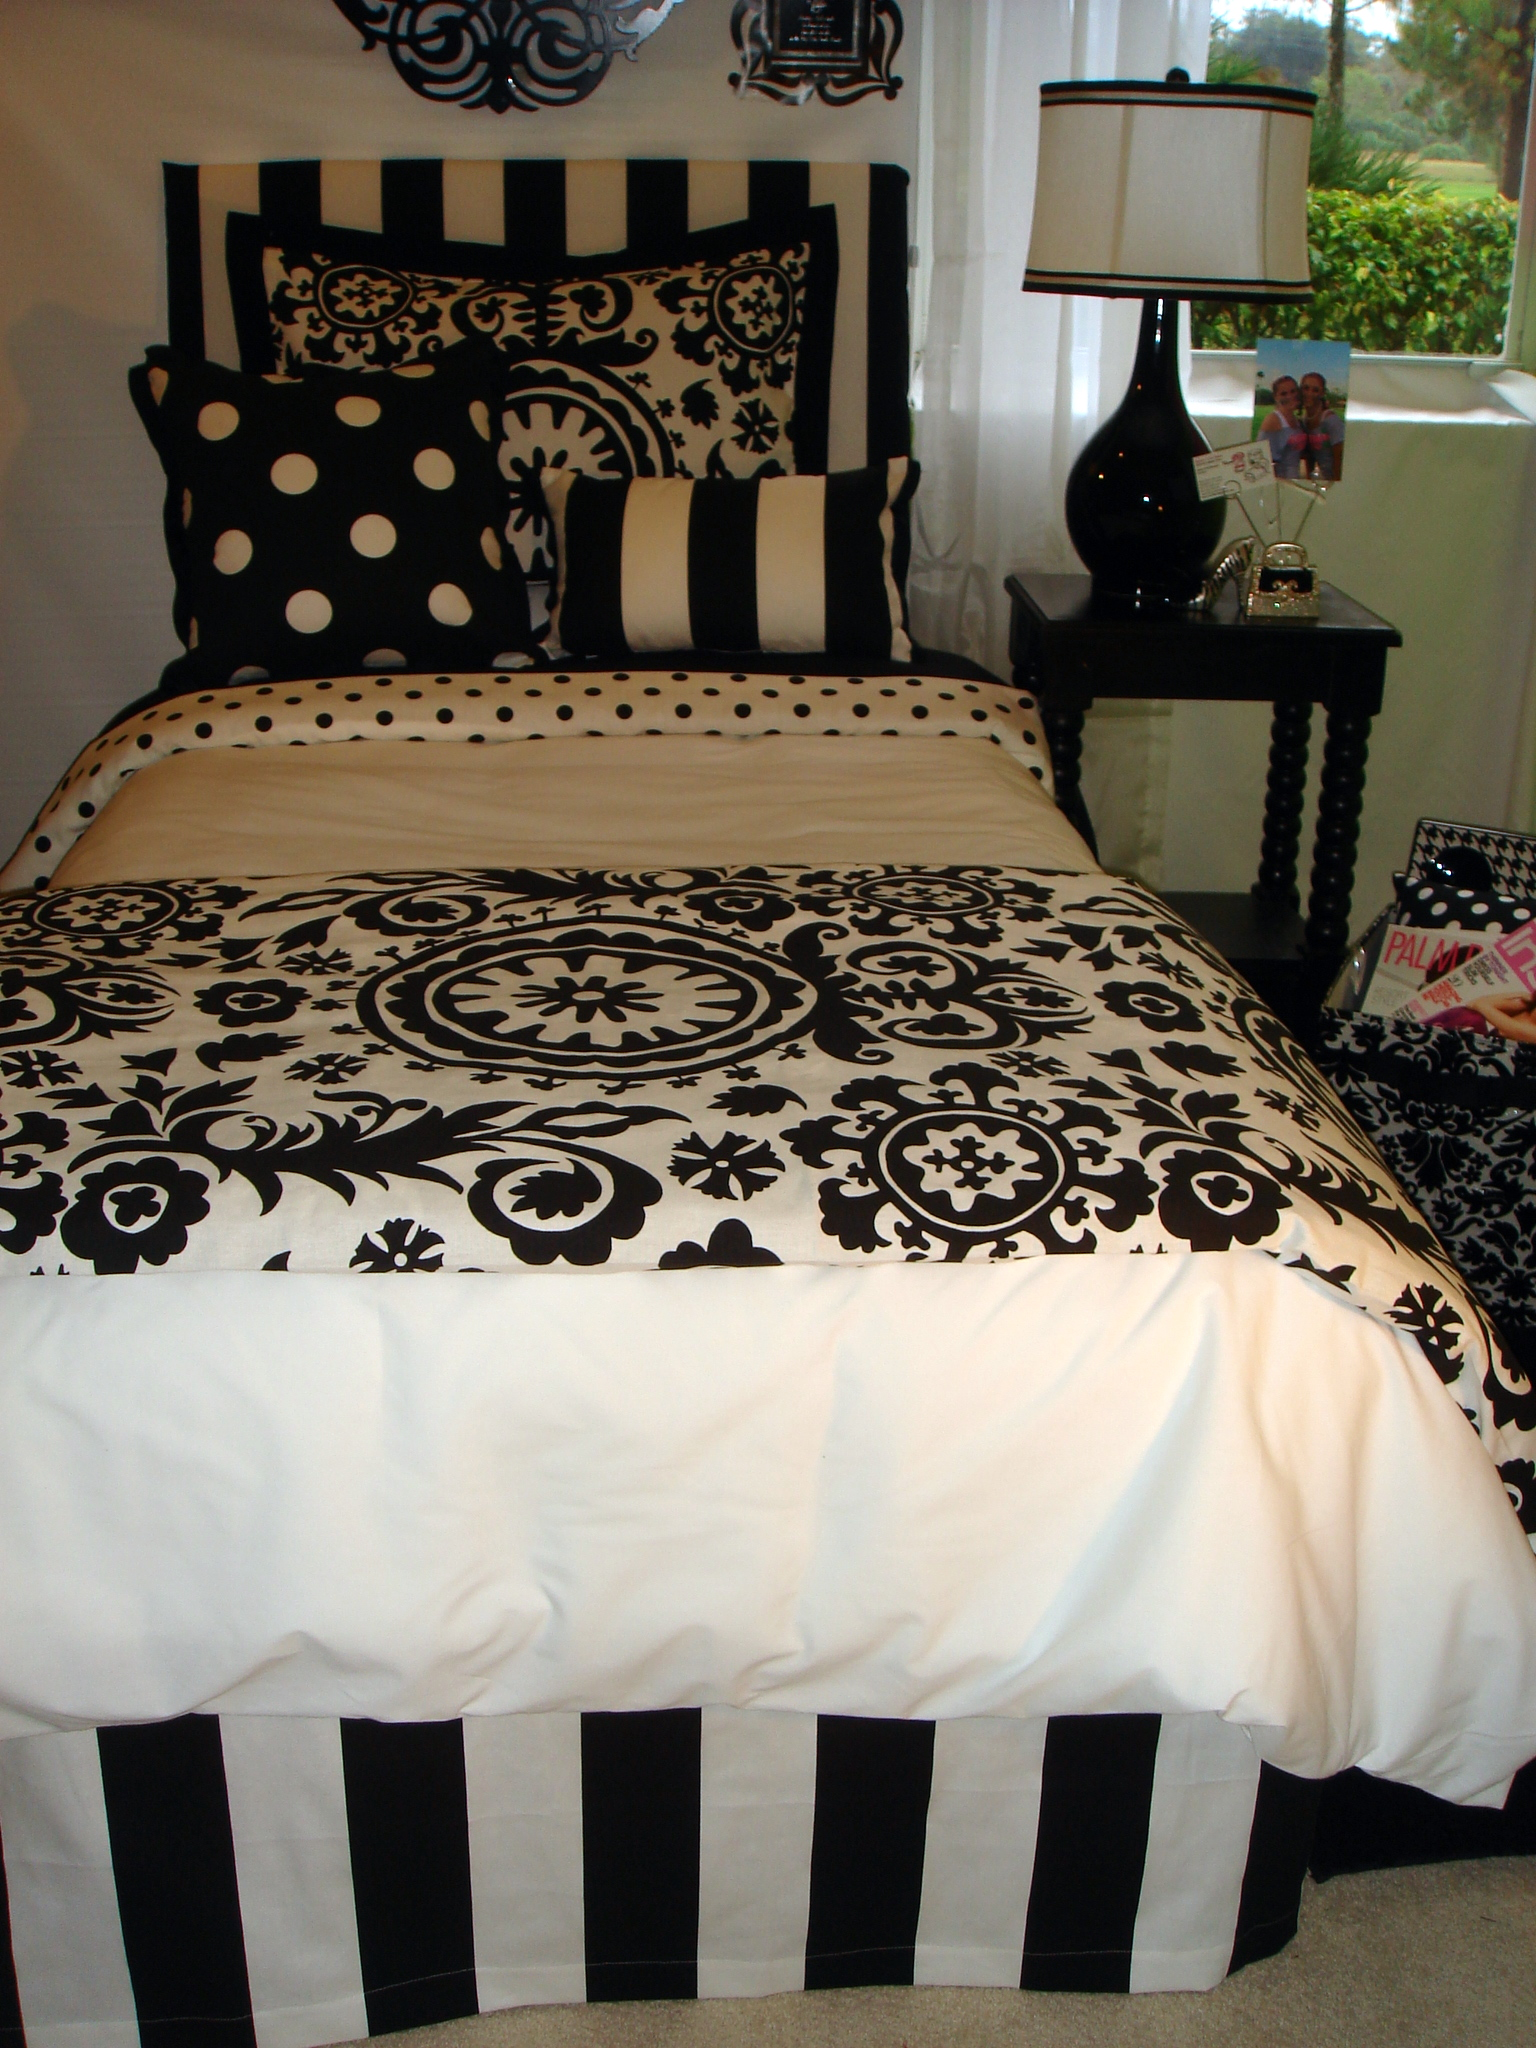 Gorgeous damask bedding for bed decorating ideas with damask bedding set and damask crib bedding